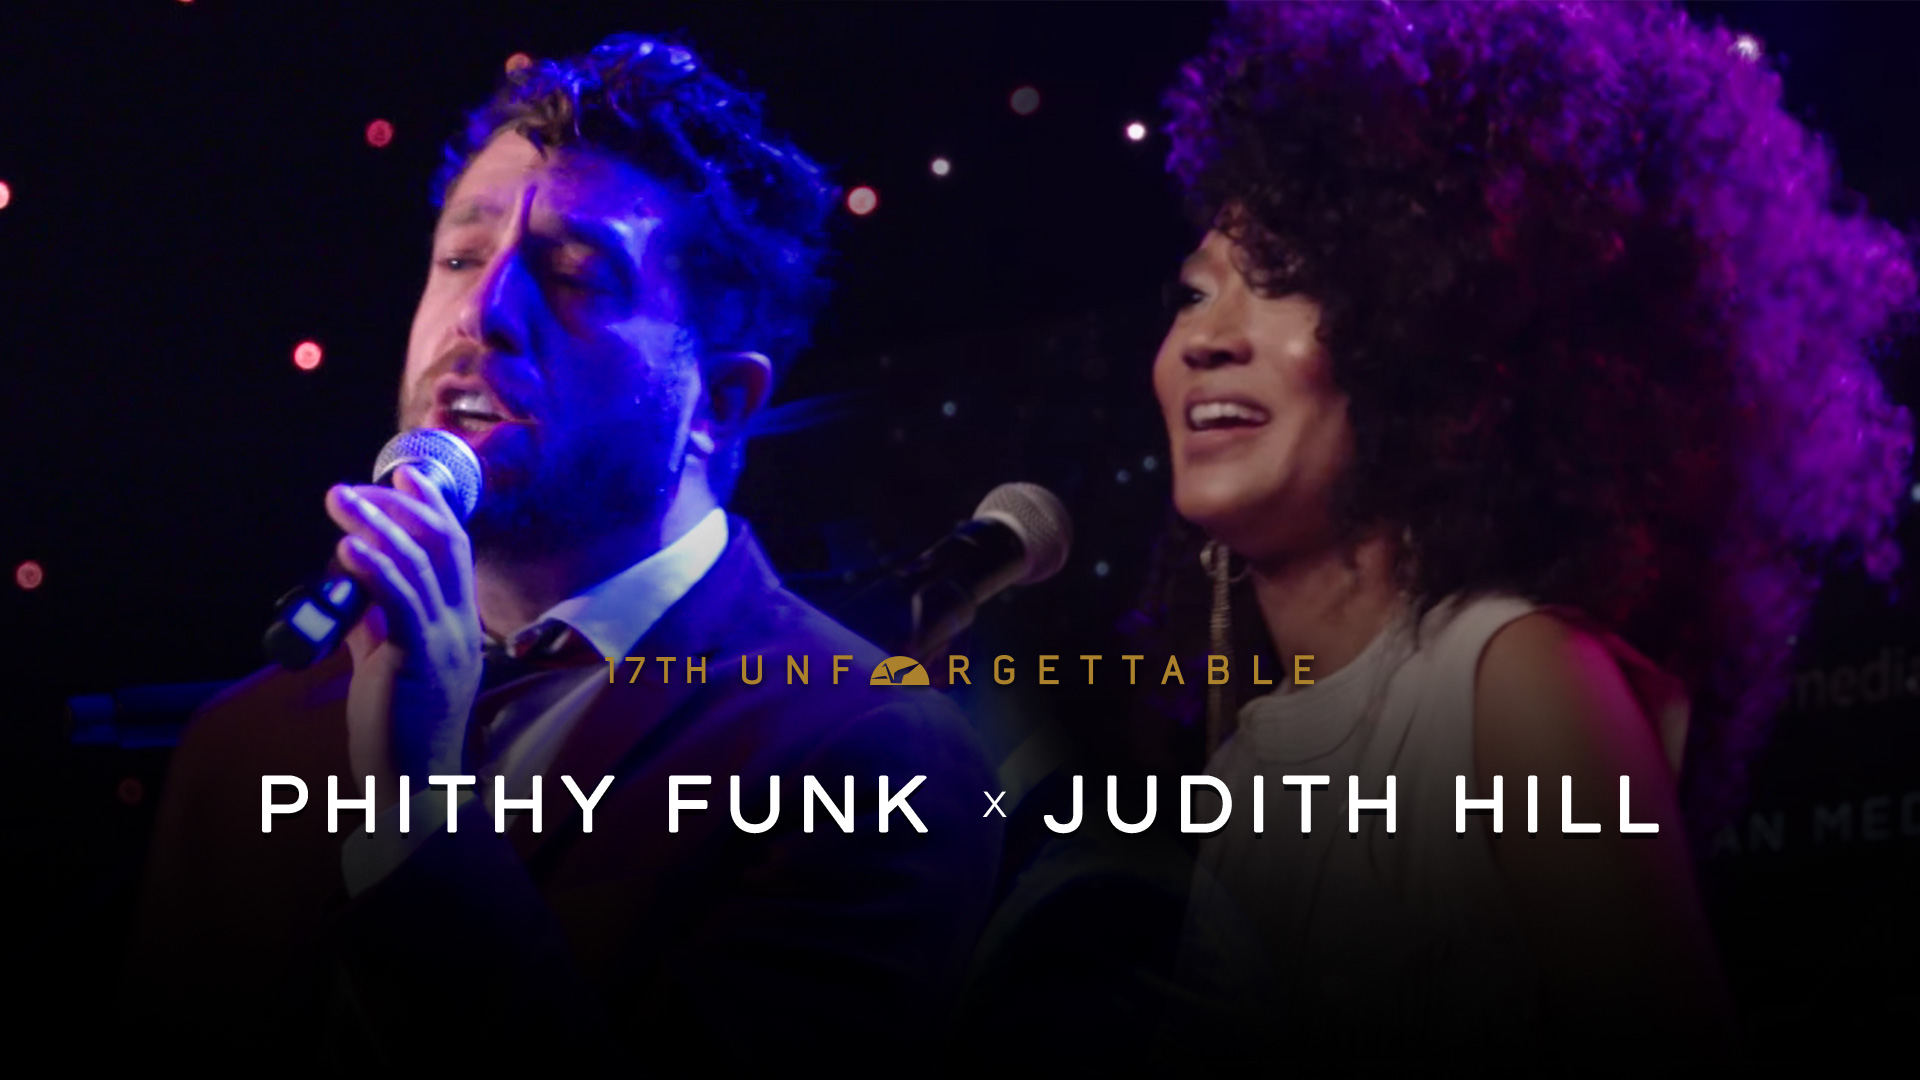 Philthy Funk x Judith Hill